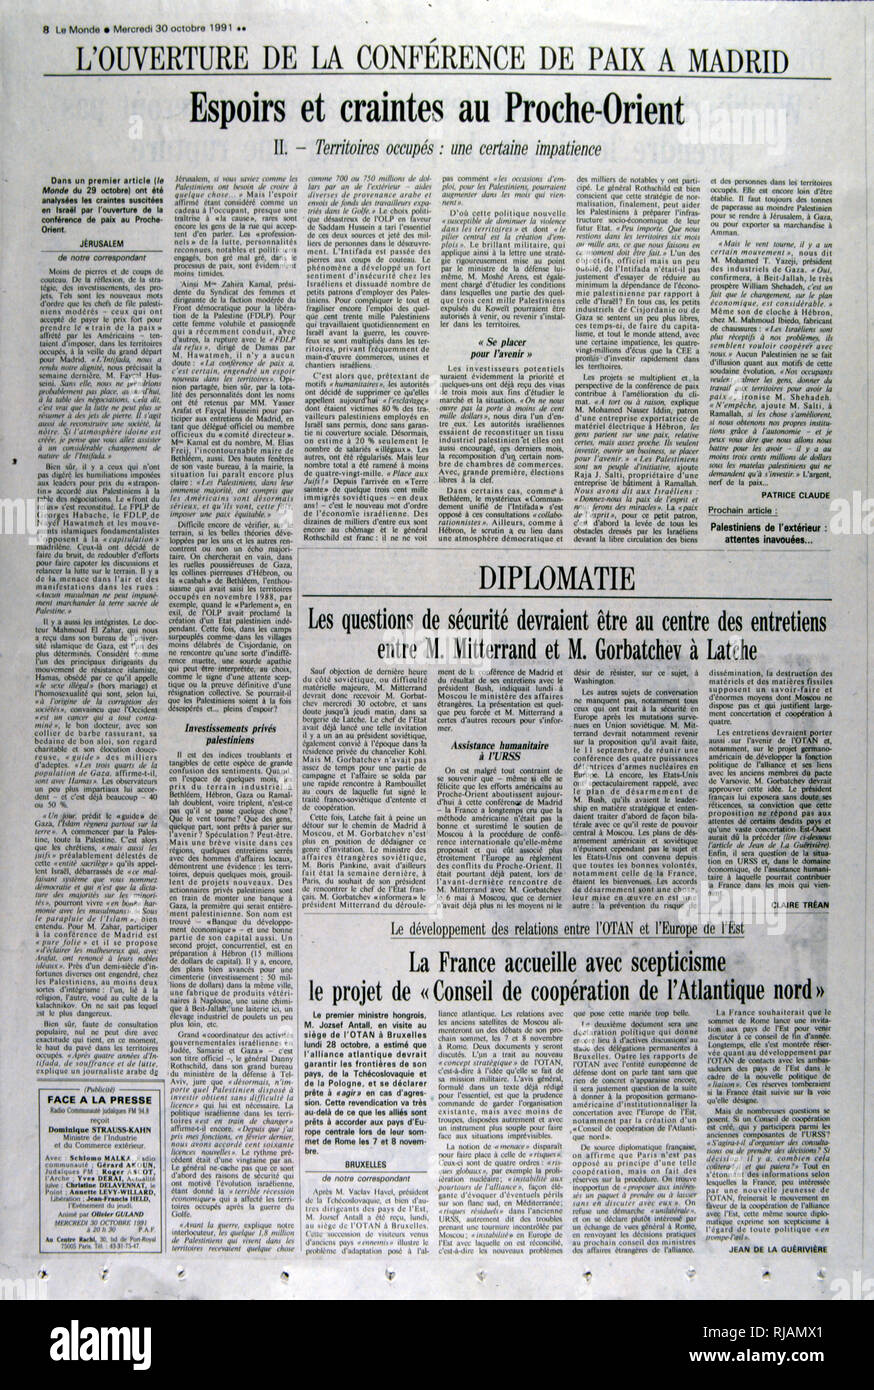 French publication 'Le monde' reporting on the Madrid Conference;  a peace conference, held from 30 October to 1 November 1991 in Madrid, hosted by Spain and co-sponsored by the United States and the Soviet Union. It was an attempt by the international community to revive the Israeli-Palestinian peace process through negotiations, involving Israel and the Palestinians as well as Arab countries, including Jordan, Lebanon and Syria. Stock Photo